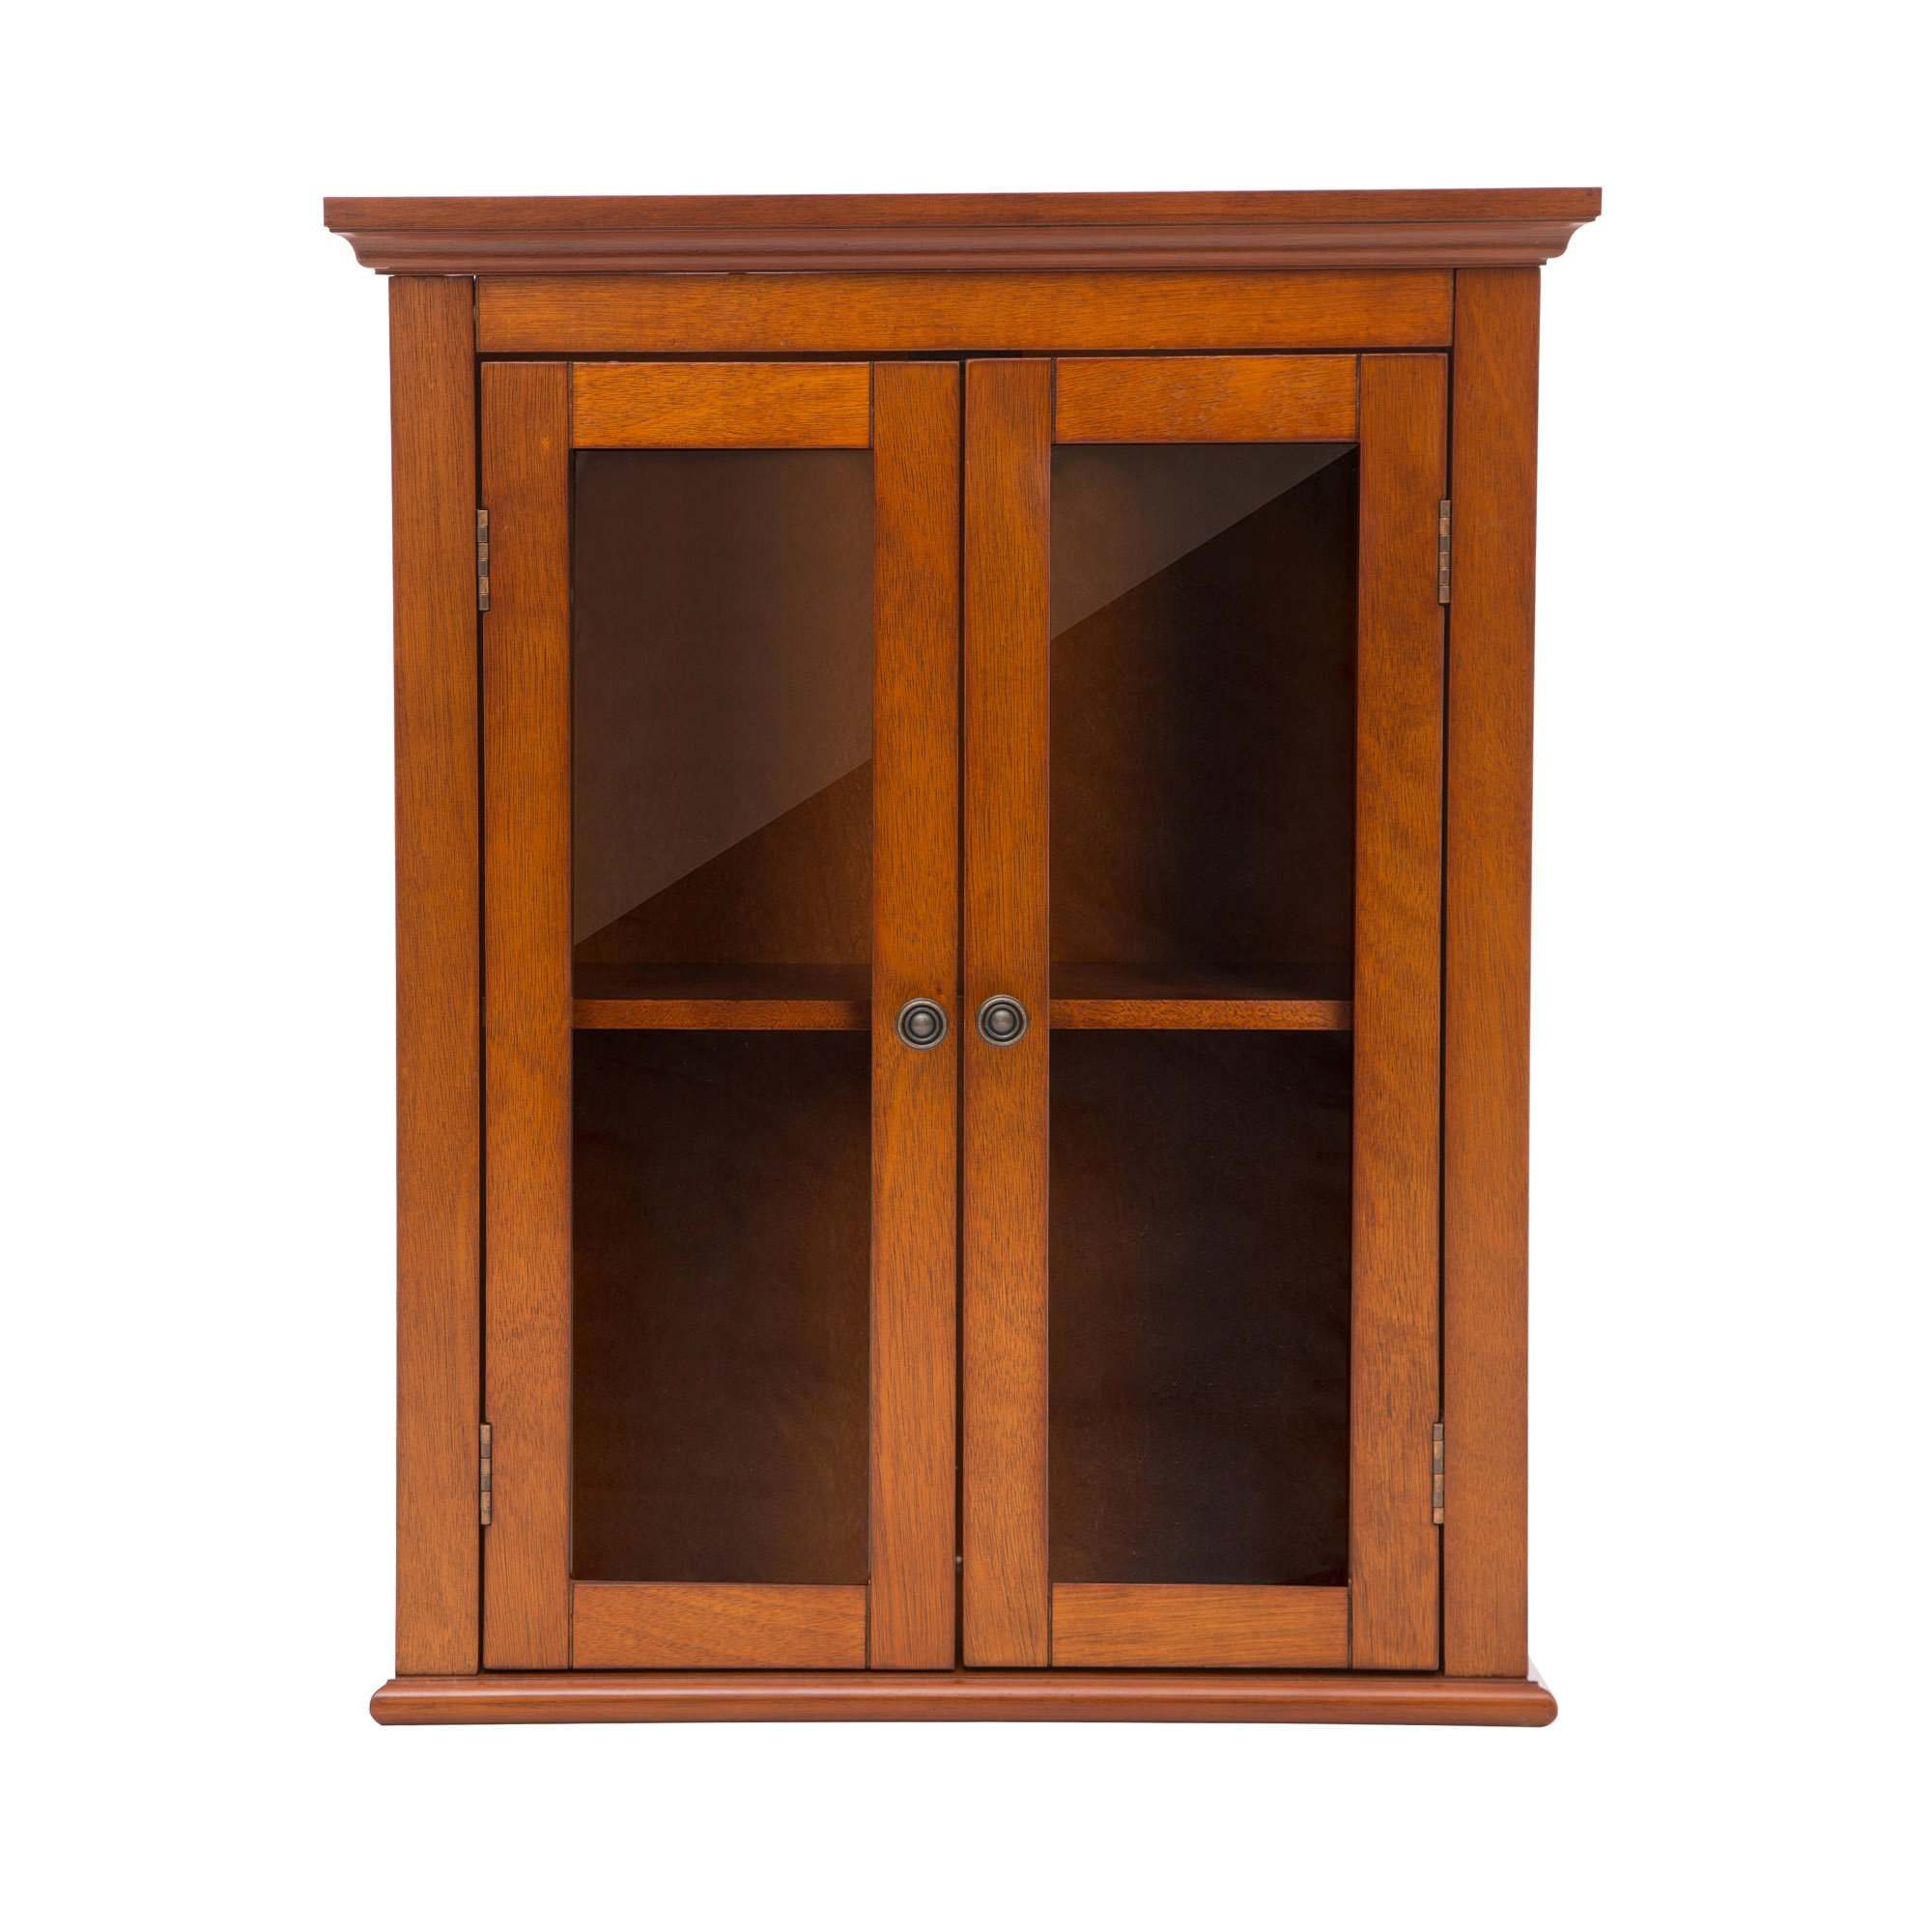 Glitzhome 24.1''H Wooden Bathroom Wall Storage Cabinet with Double Doors